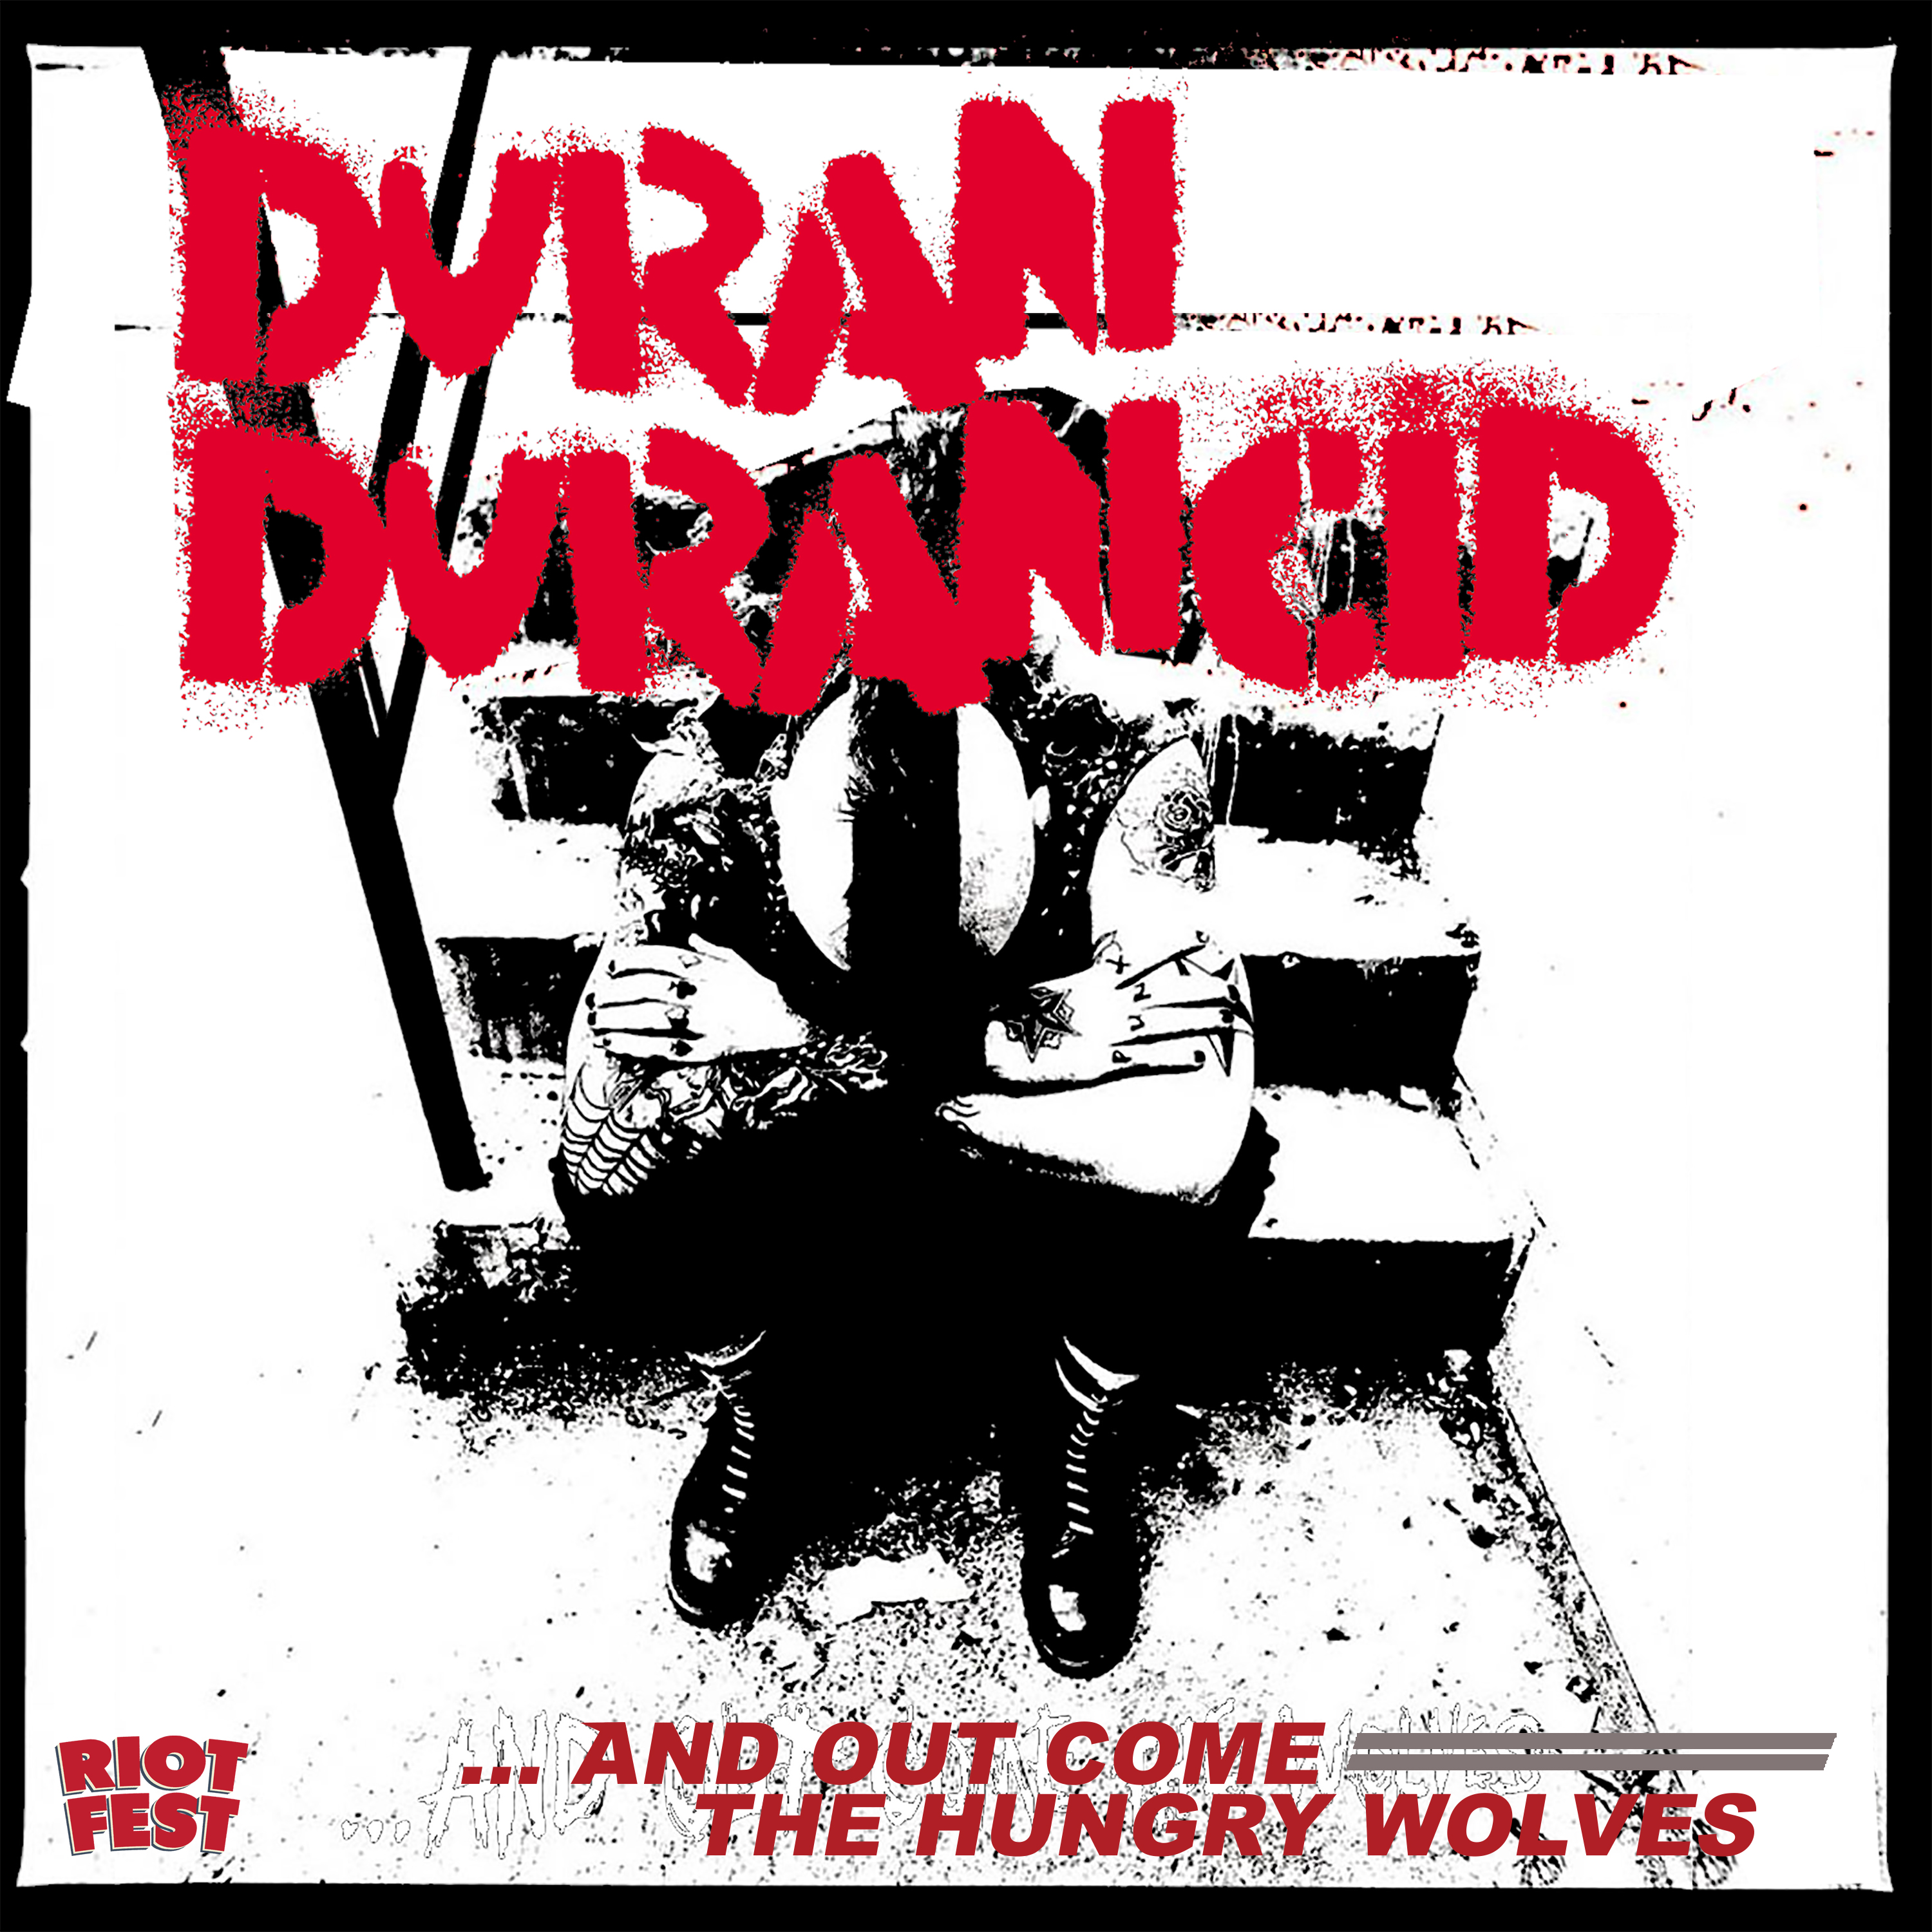 duran durancid album rancid 1